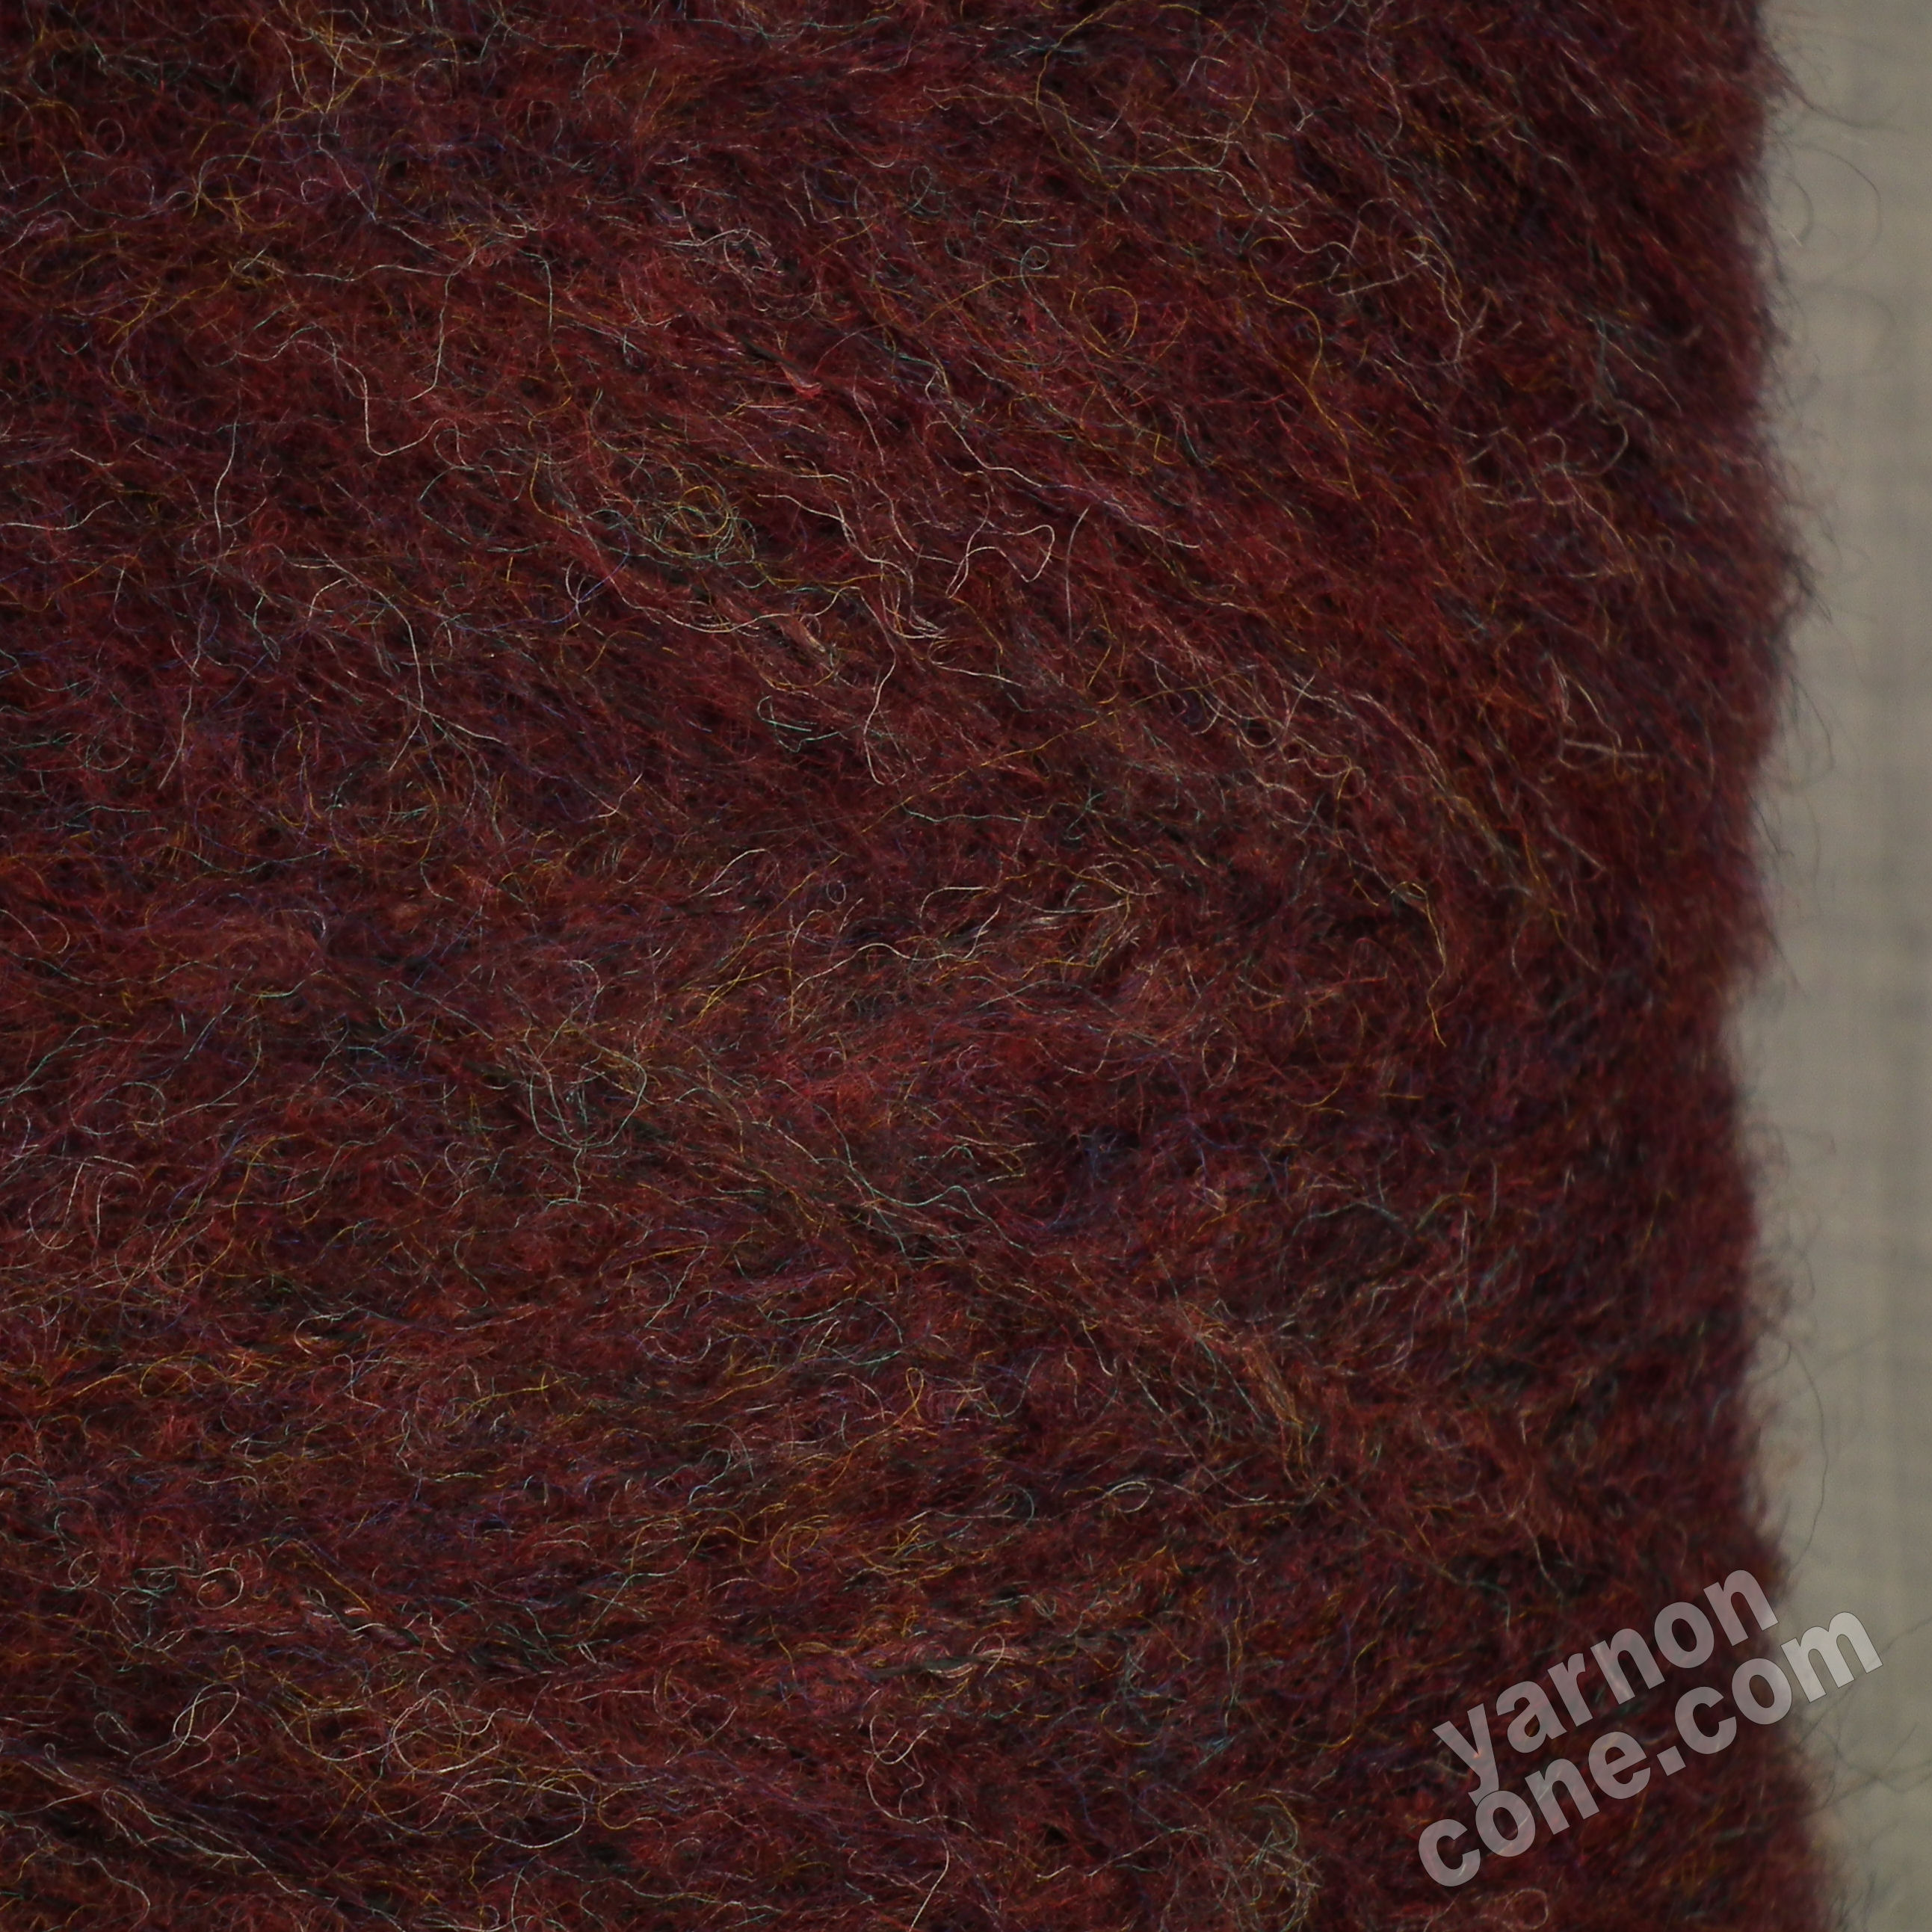 mohair wool viscose blend 4 ply yarn on cone soft fluffy warm knitting uk bordeaux oxblood